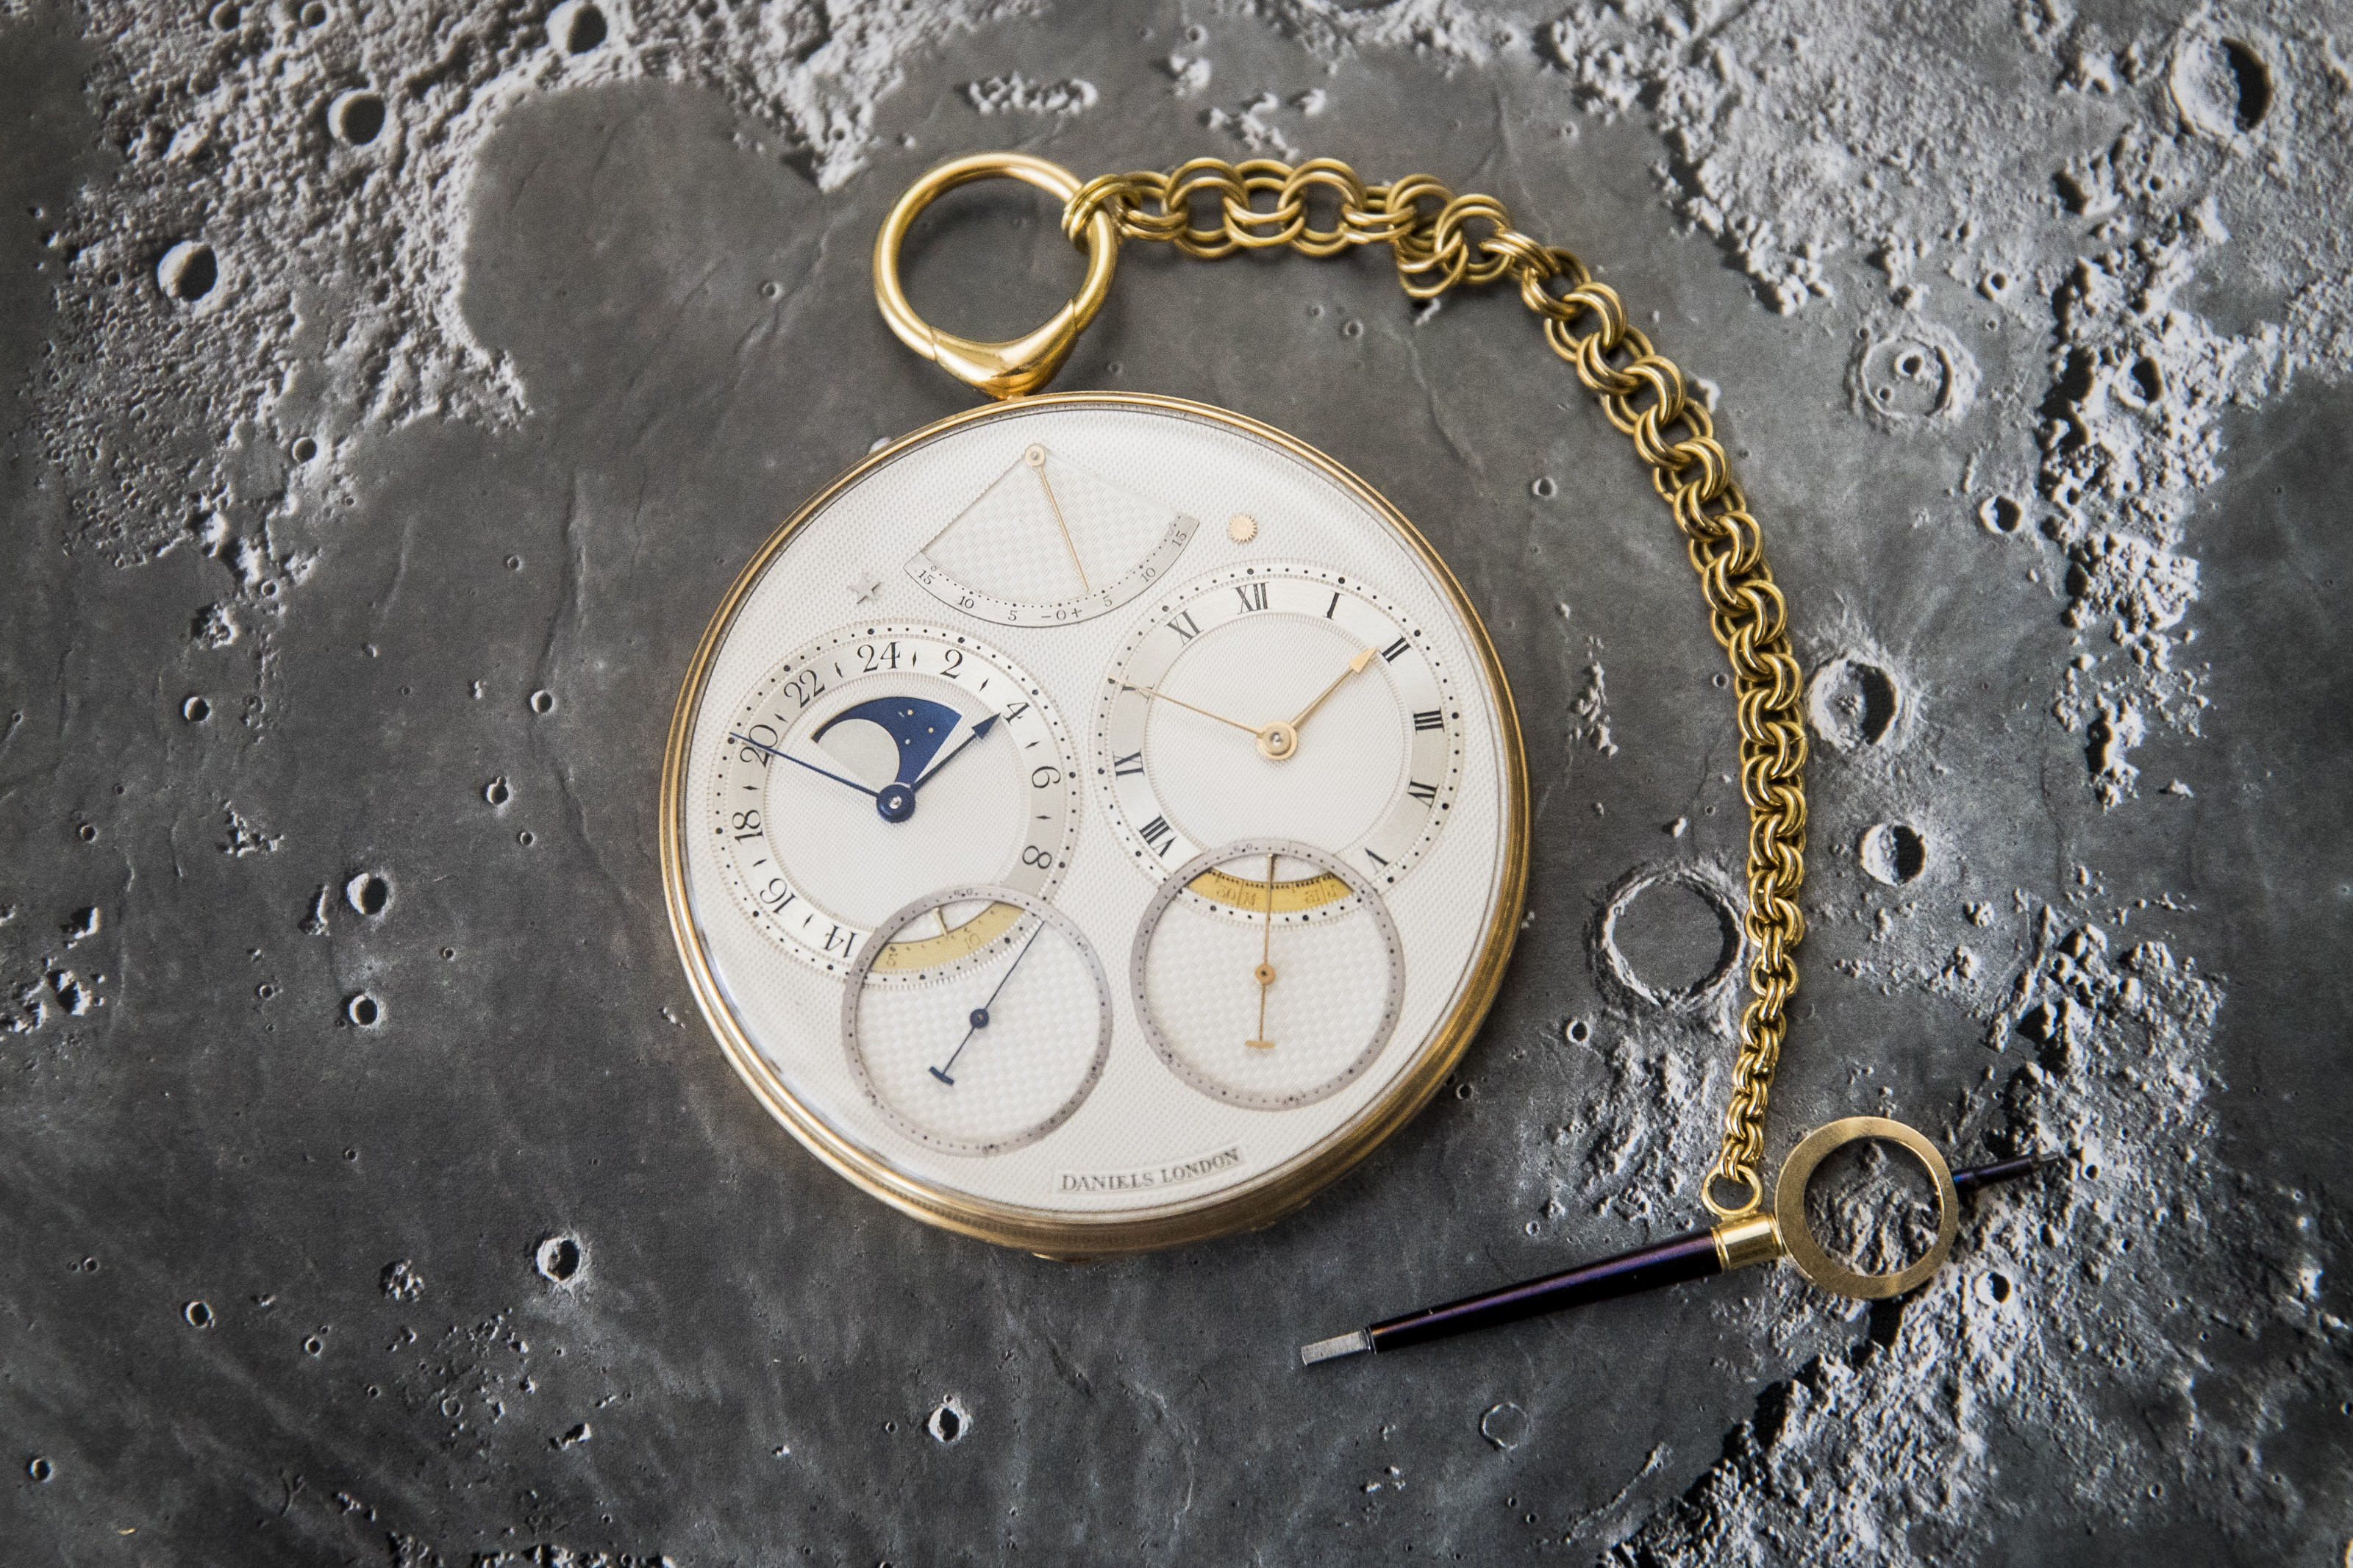 72be2cc00f George Daniels Space Traveller 1 pocket watch, inspired by the Apollo 11  moon landing, fetches a record US$4.6 million at auction | South China  Morning Post